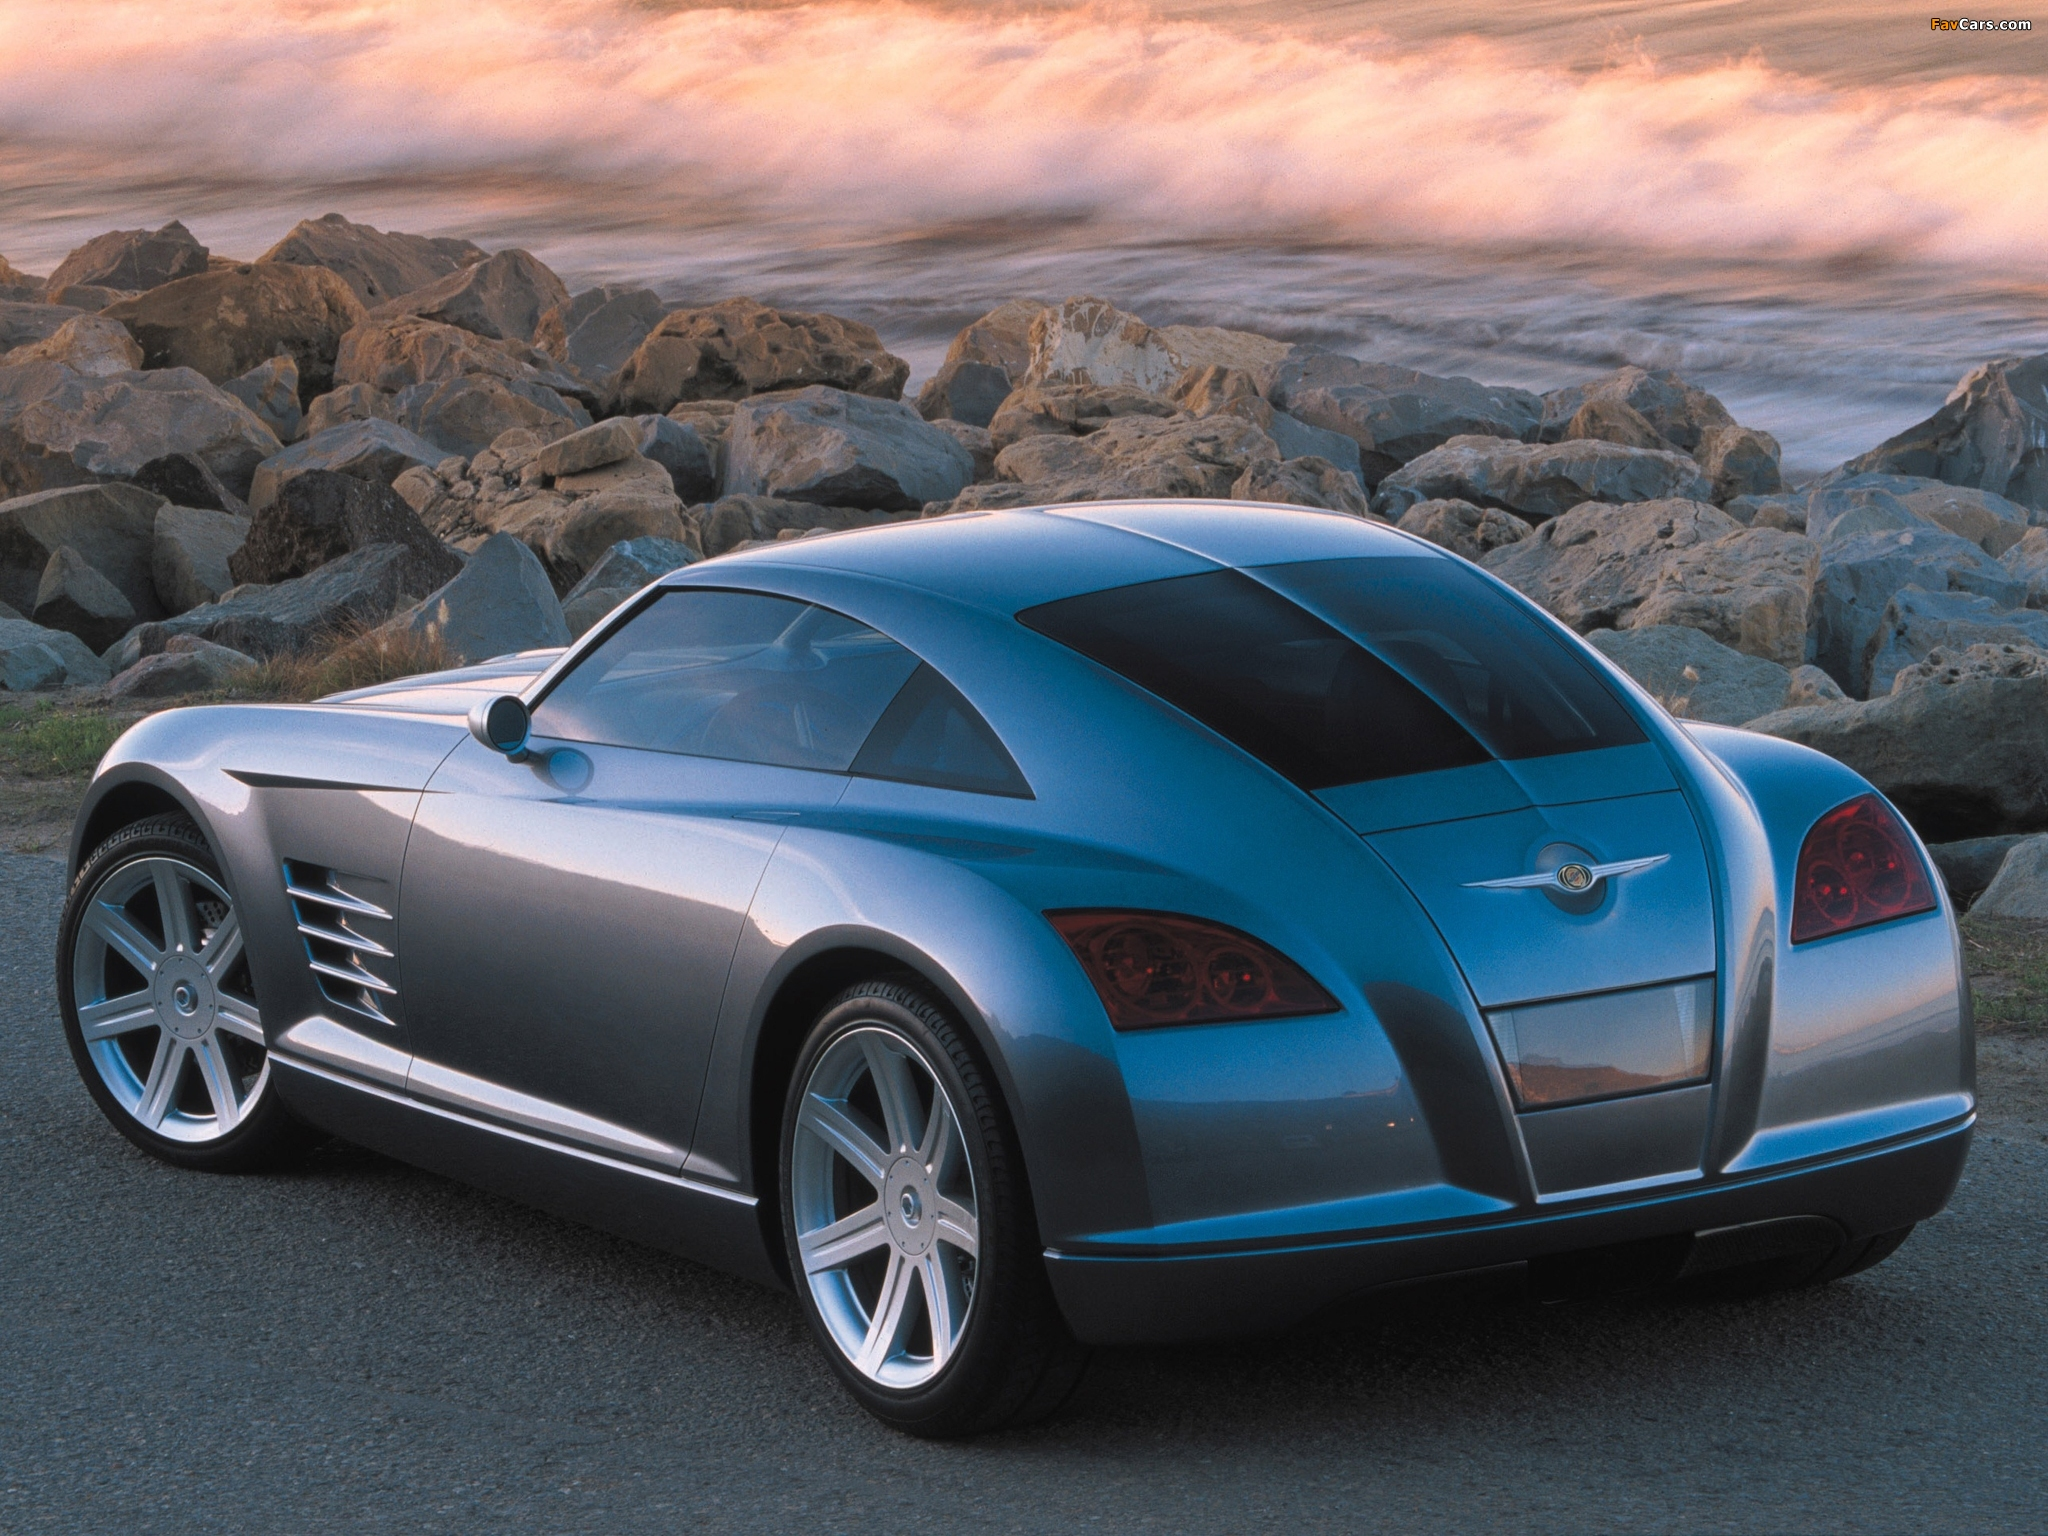 Chrysler Crossfire Concept 2001 pictures (2048 x 1536)